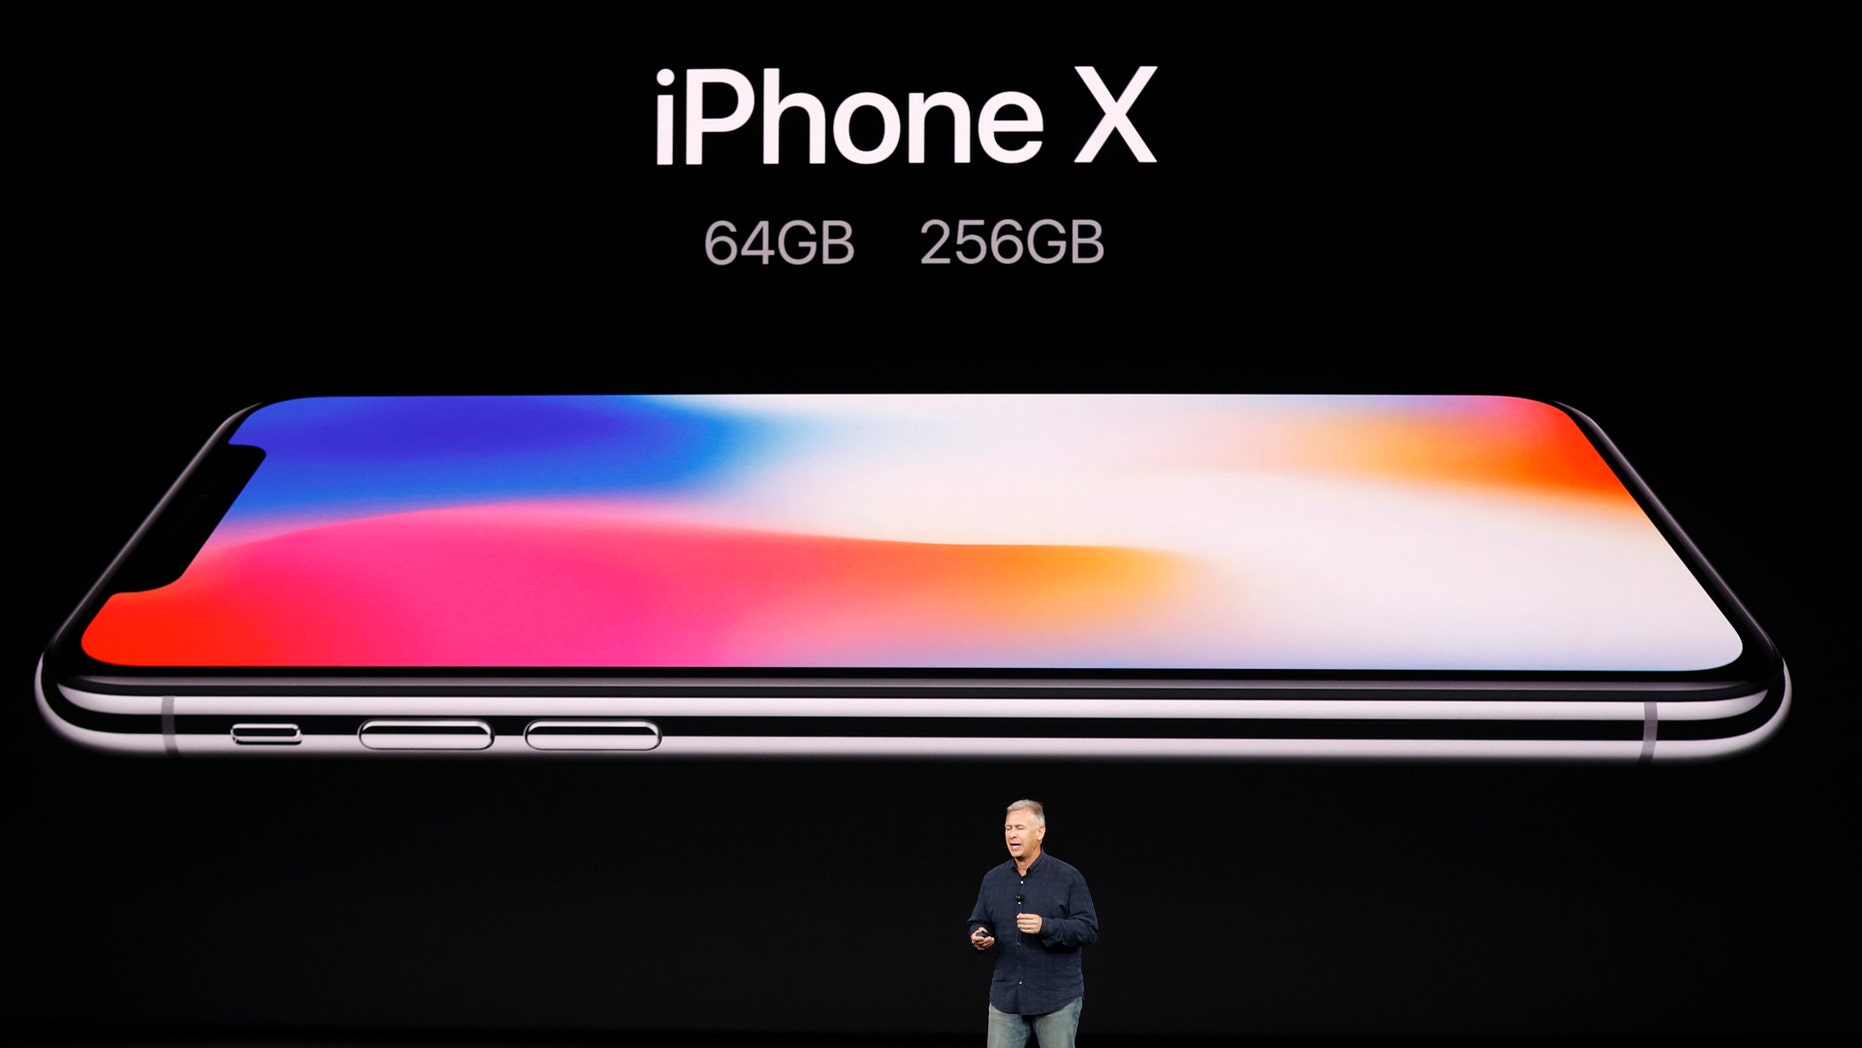 IPHONE X LONG TERM REVIEW